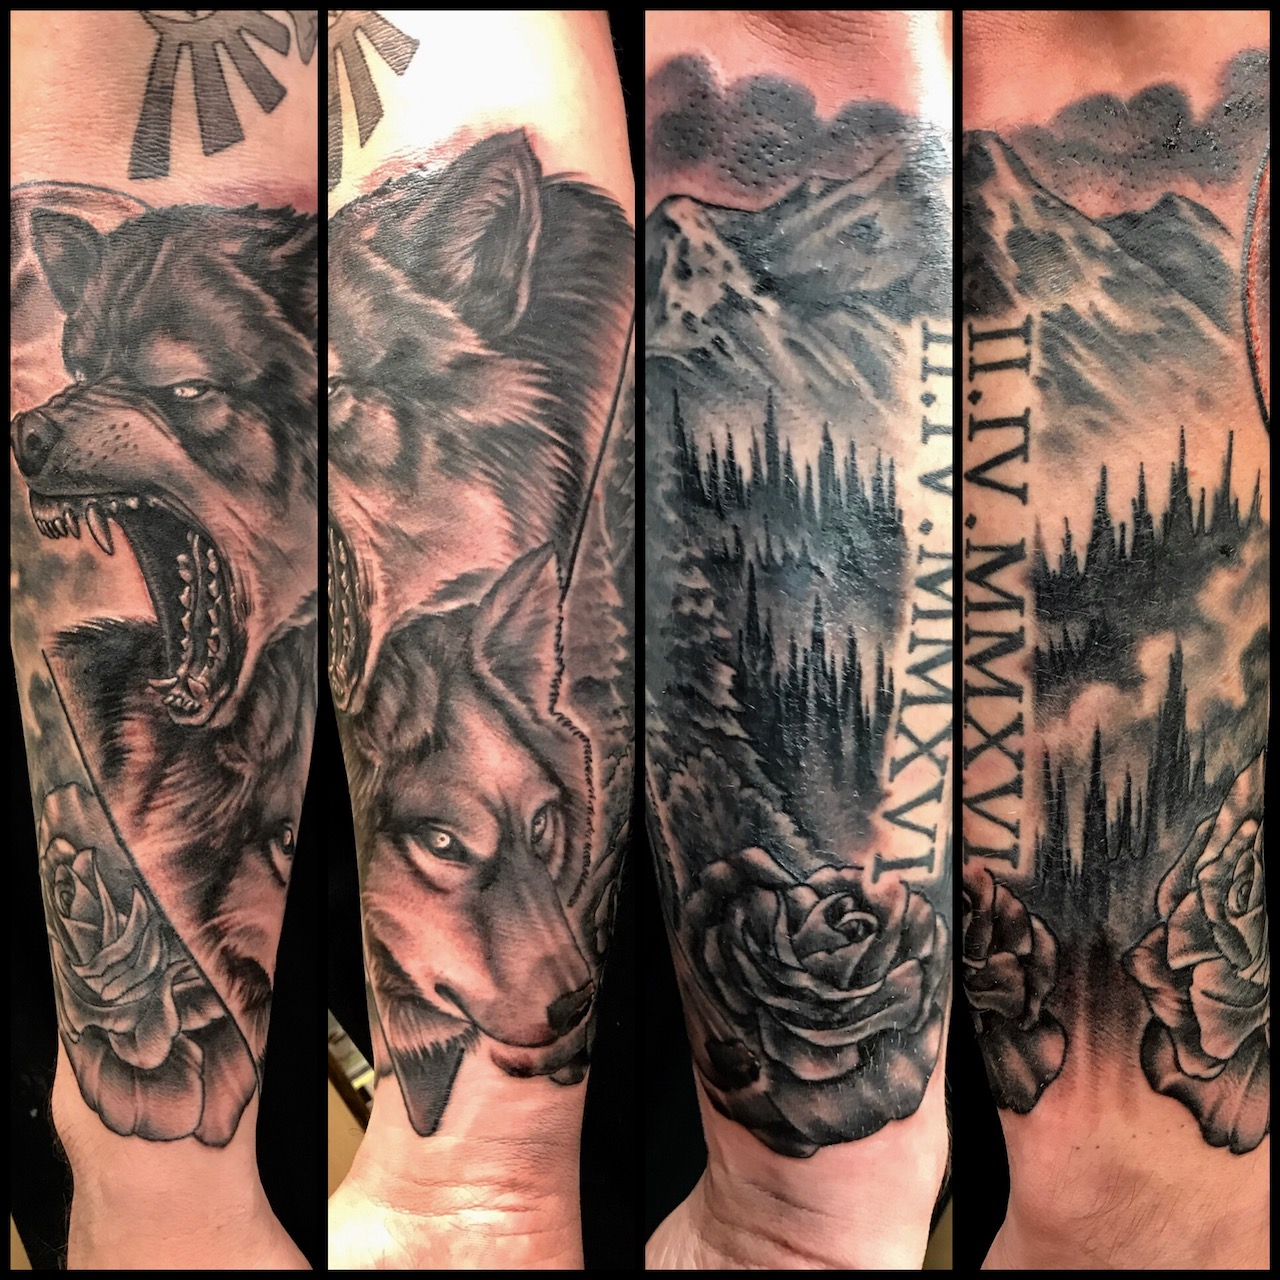 Black and grey tattoo style of wolves and the wilderness in realism